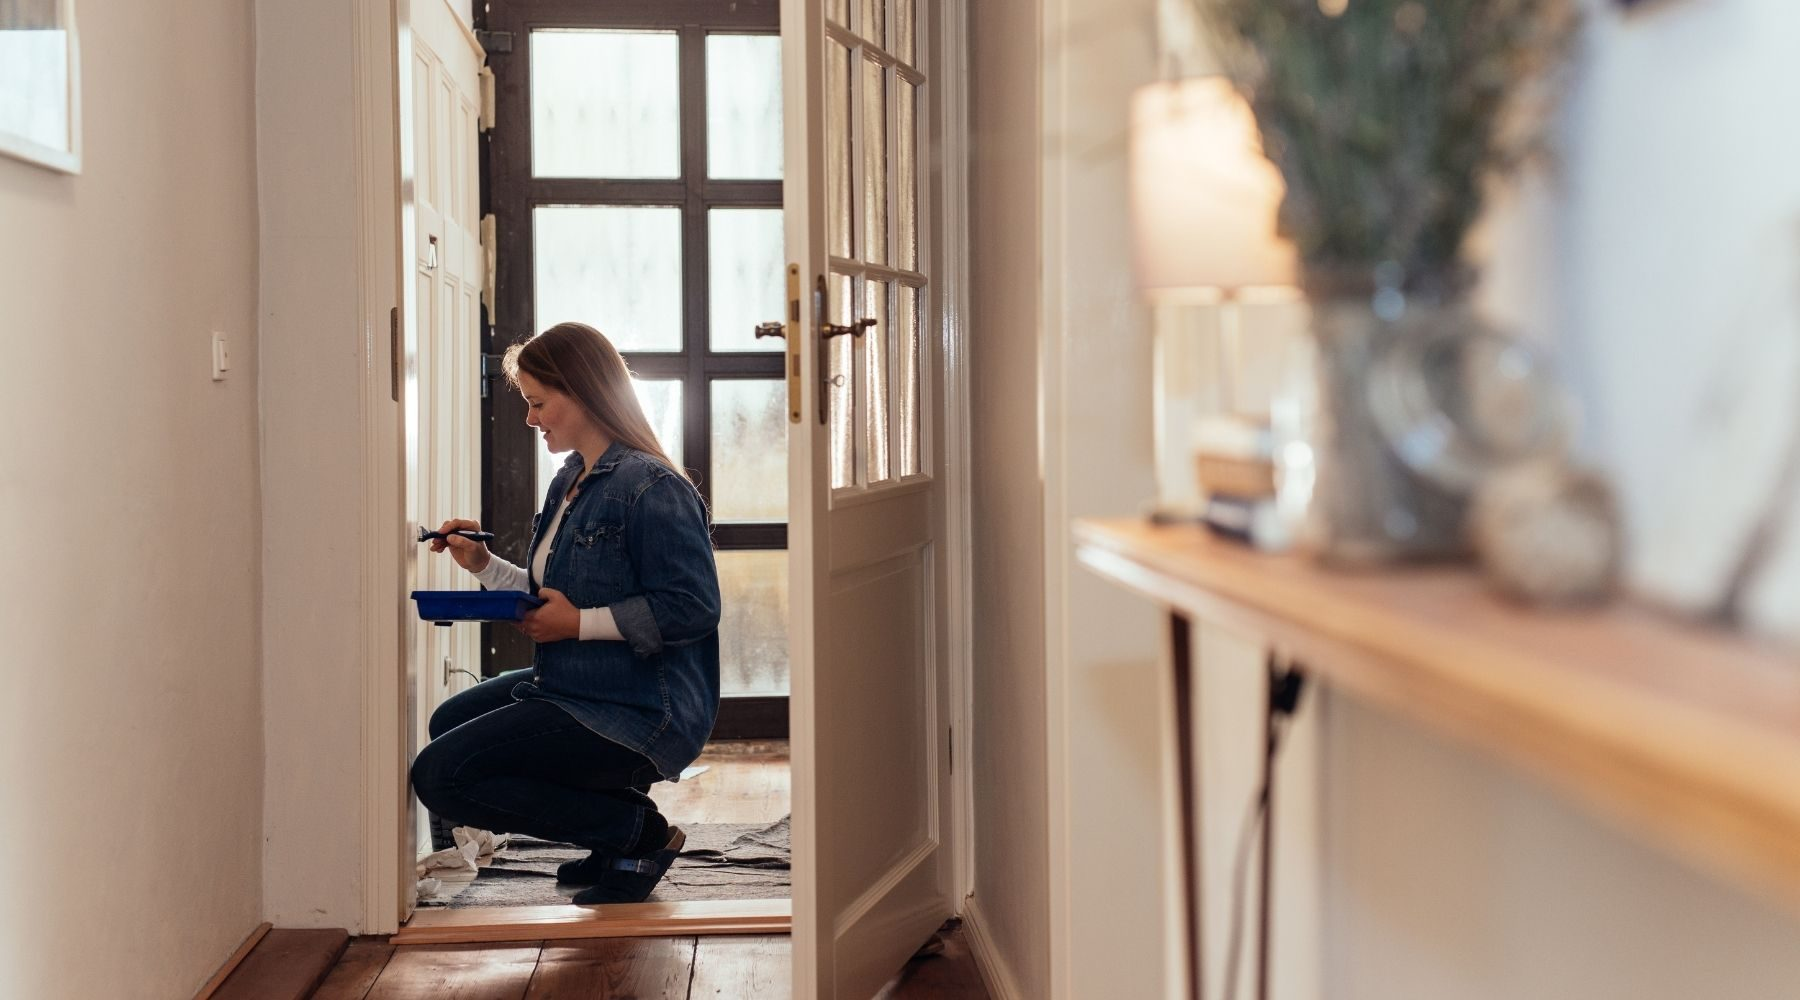 Selling in 2021? Here are 6 ways you could add value to your home